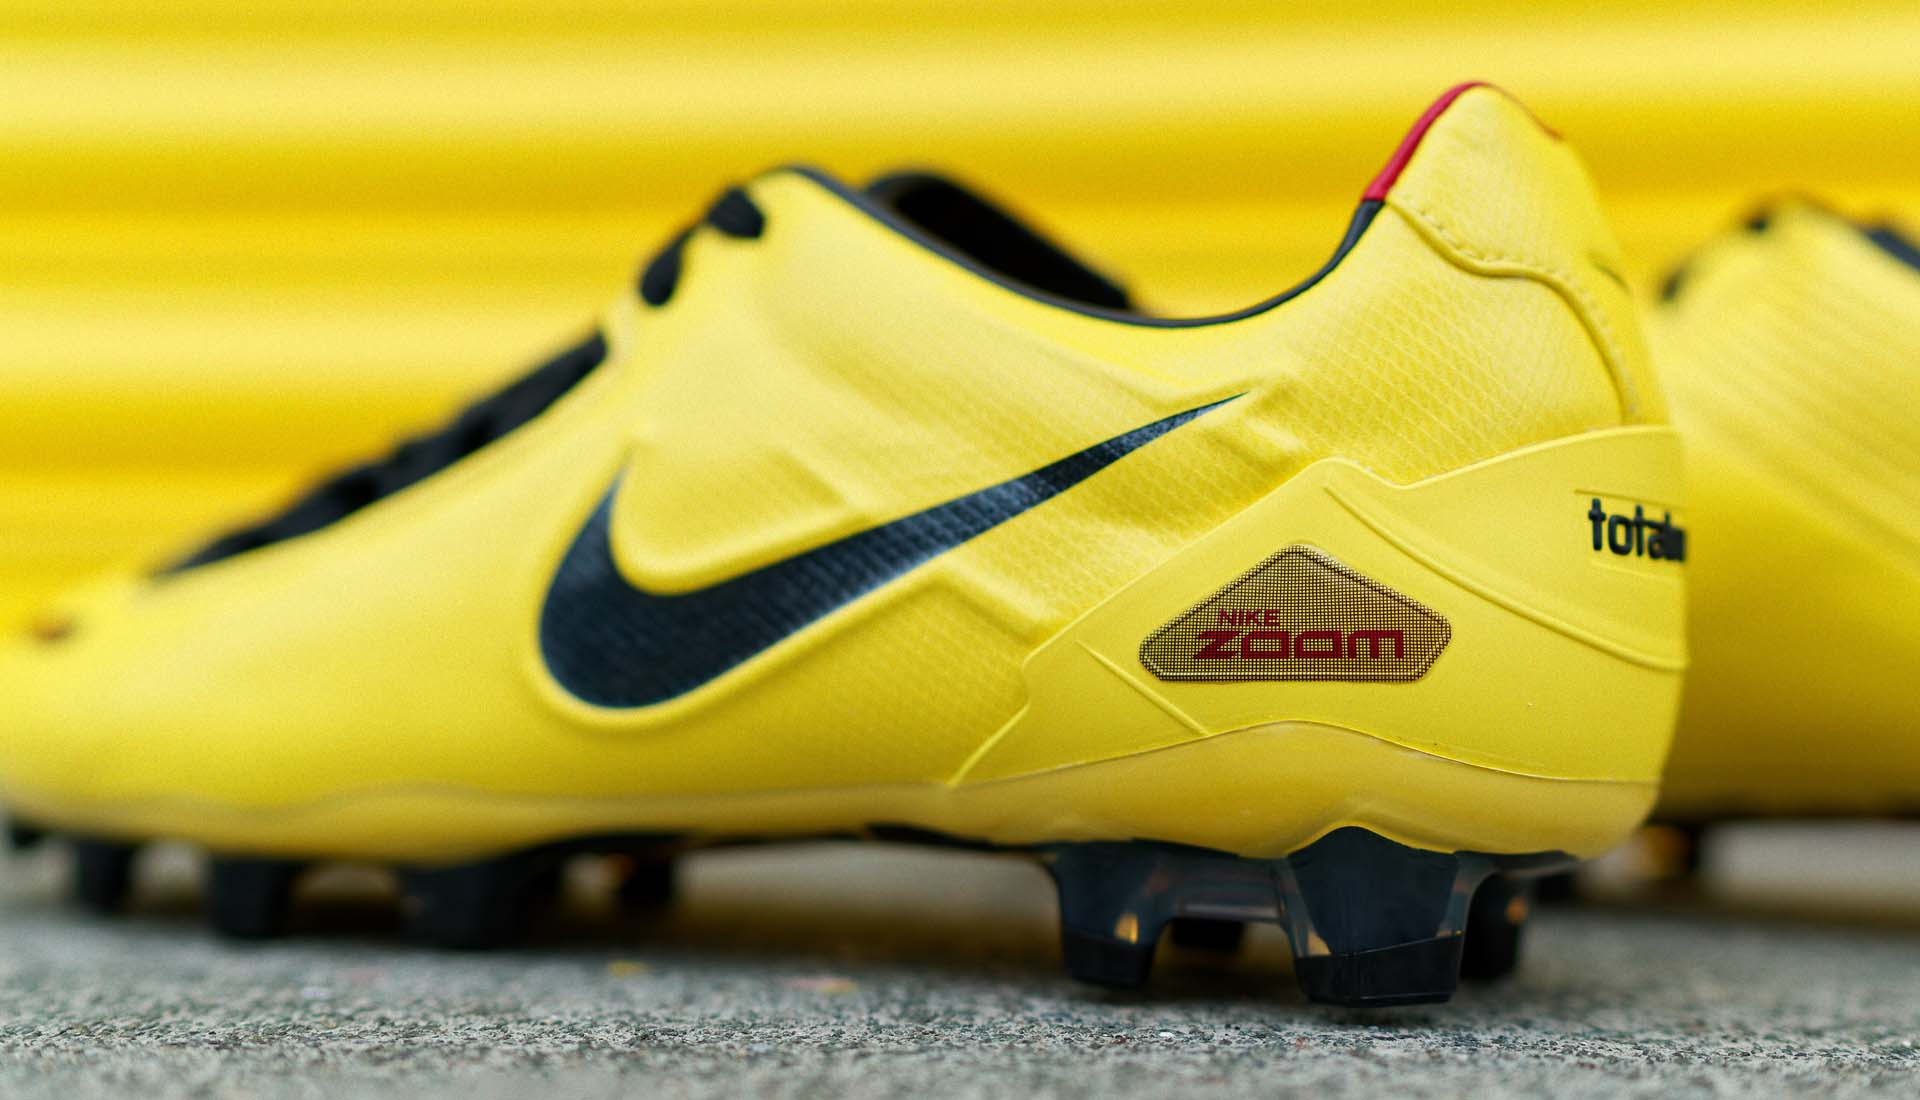 Nike Re launch The T90 Laser I Football Boots SoccerBible